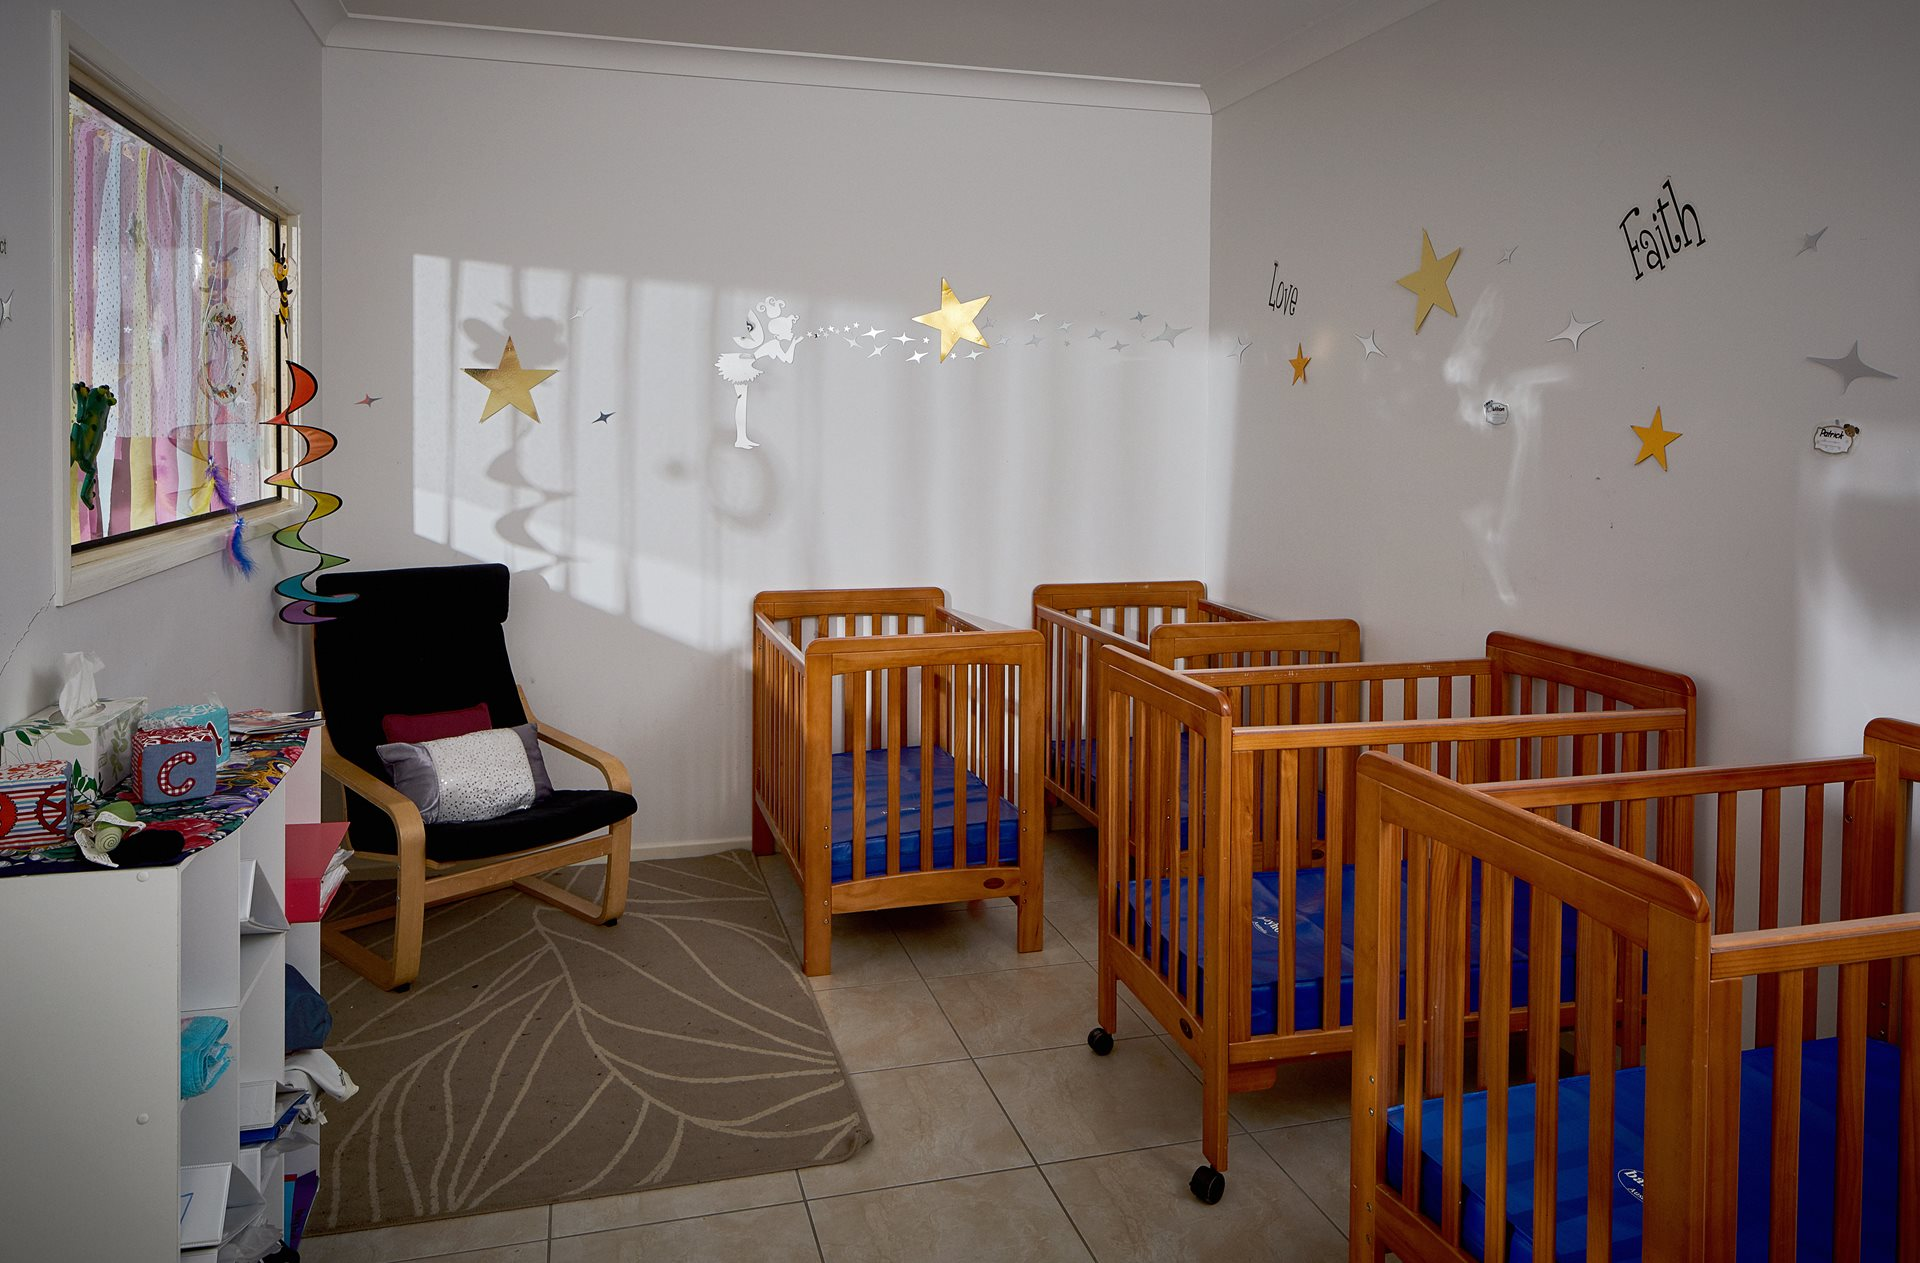 A nursery room with 4 baby cots and rocking chair in view